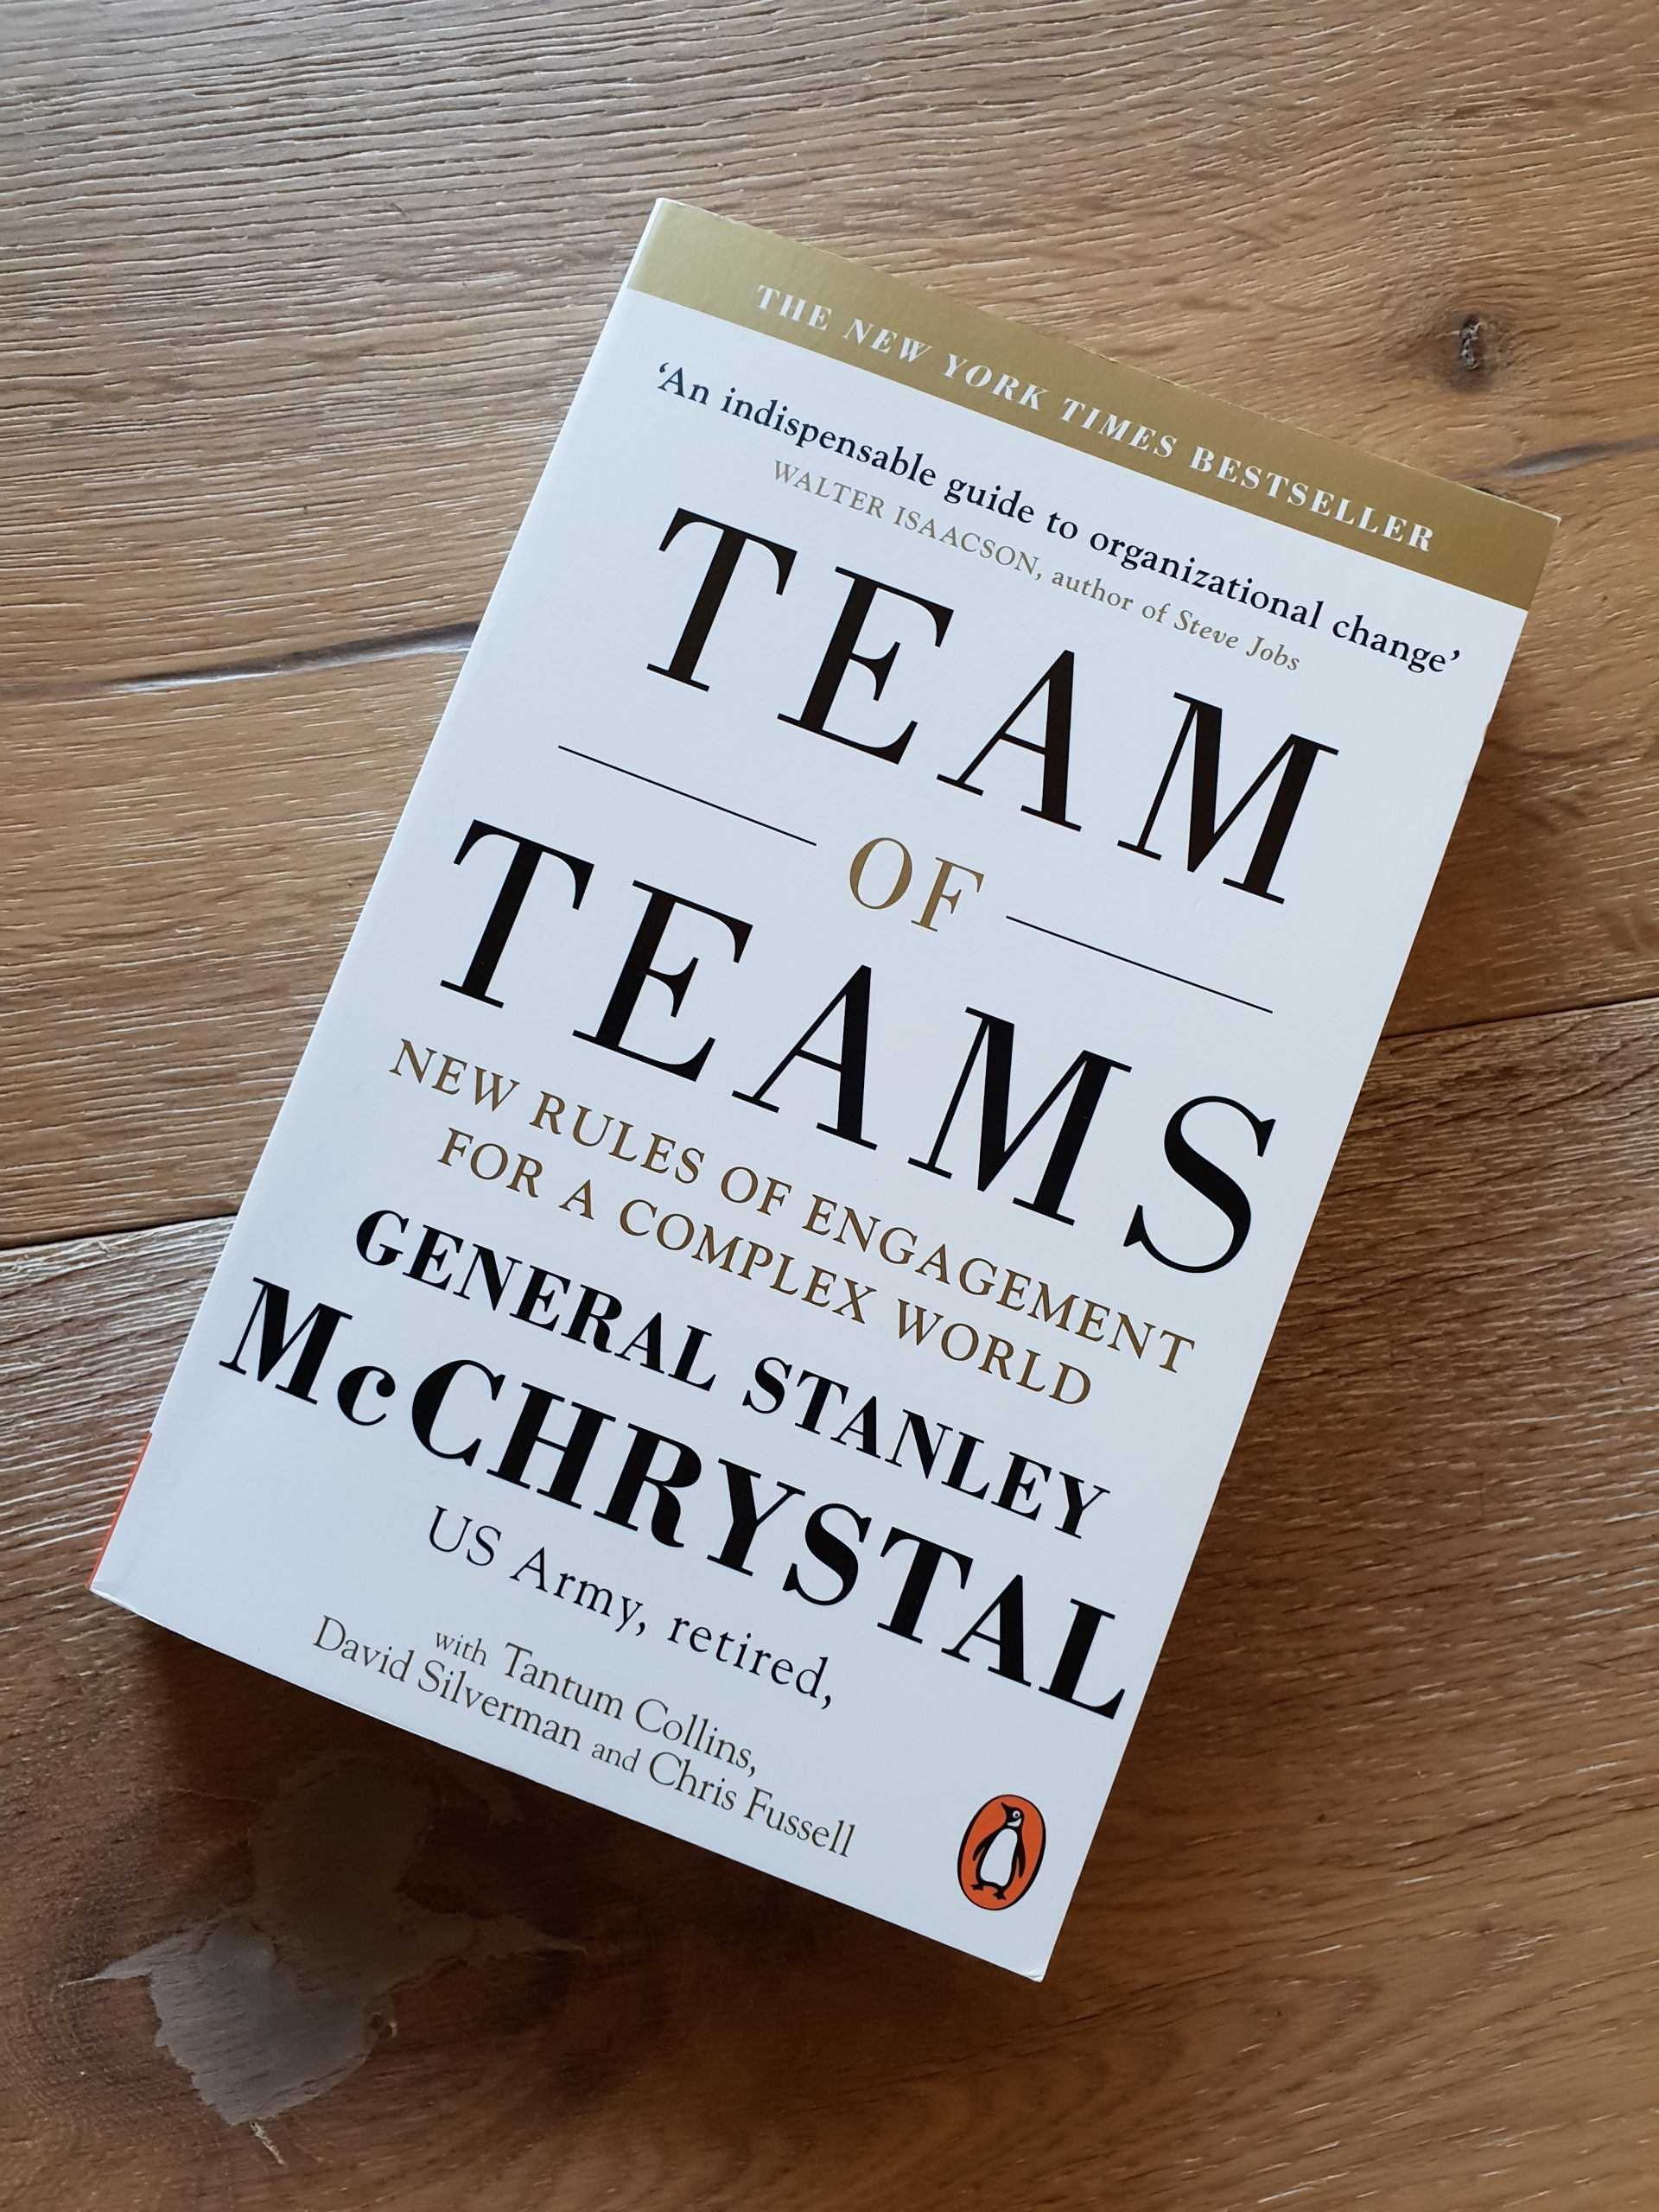 Team Of Teams Dynamics, The New Rules of Engagement for a Complex ...